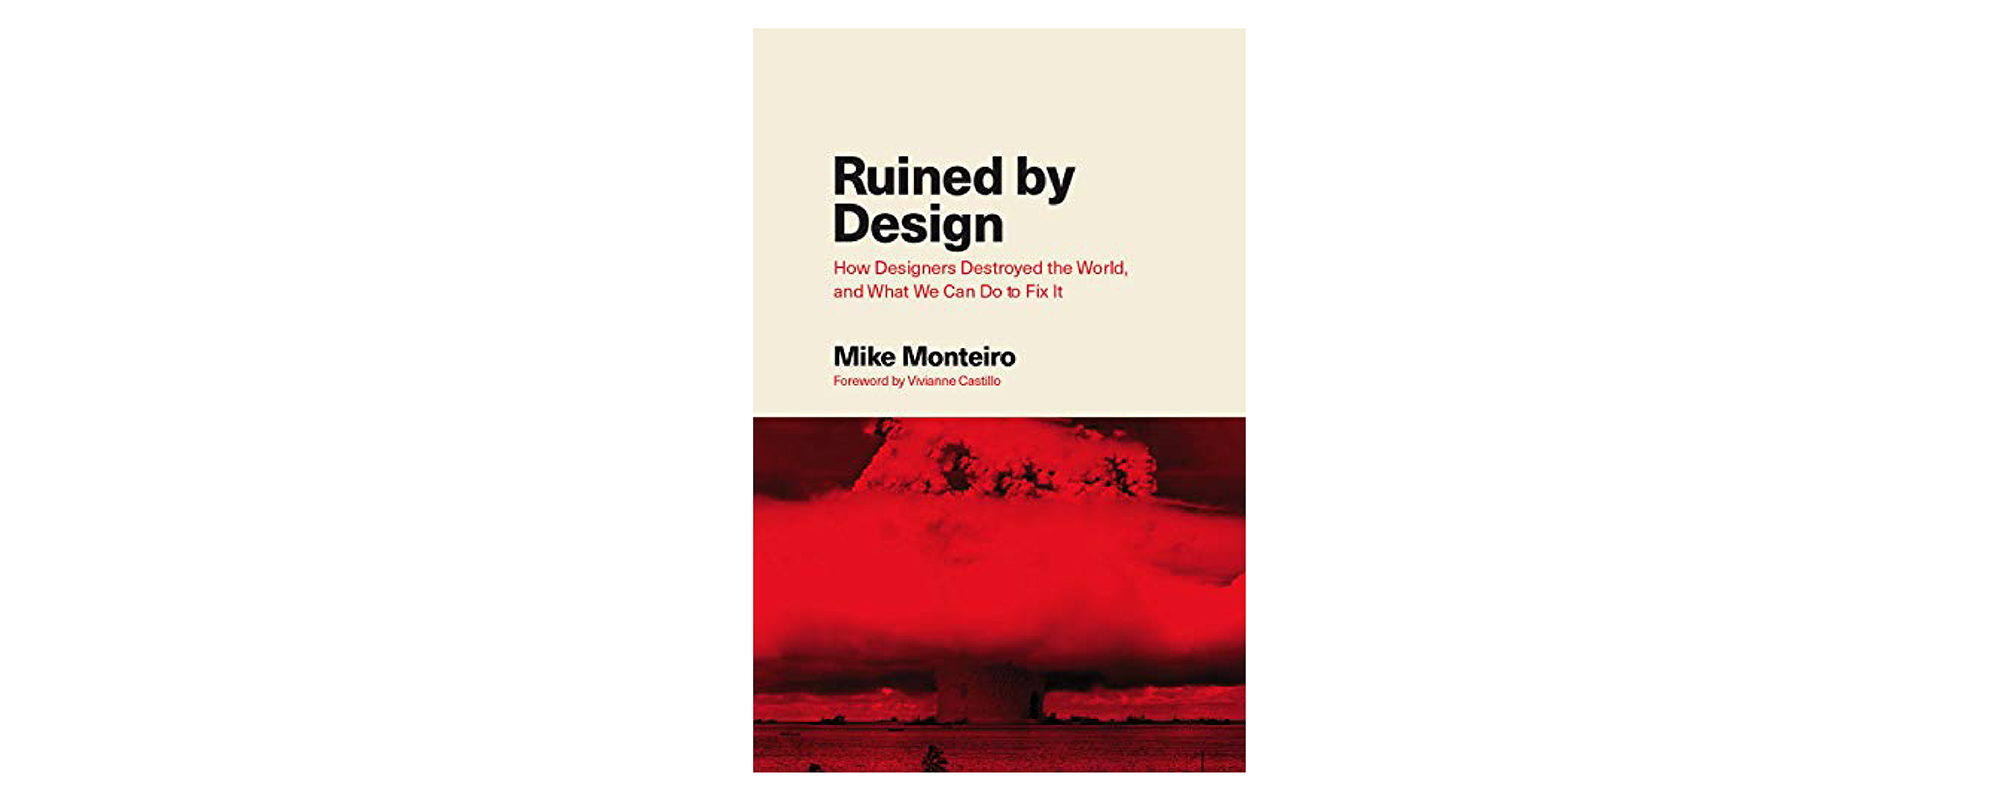 Ruined by Design: How Designers Destroyed the World, and What We Can Do to Fix It by Mike Monteiro